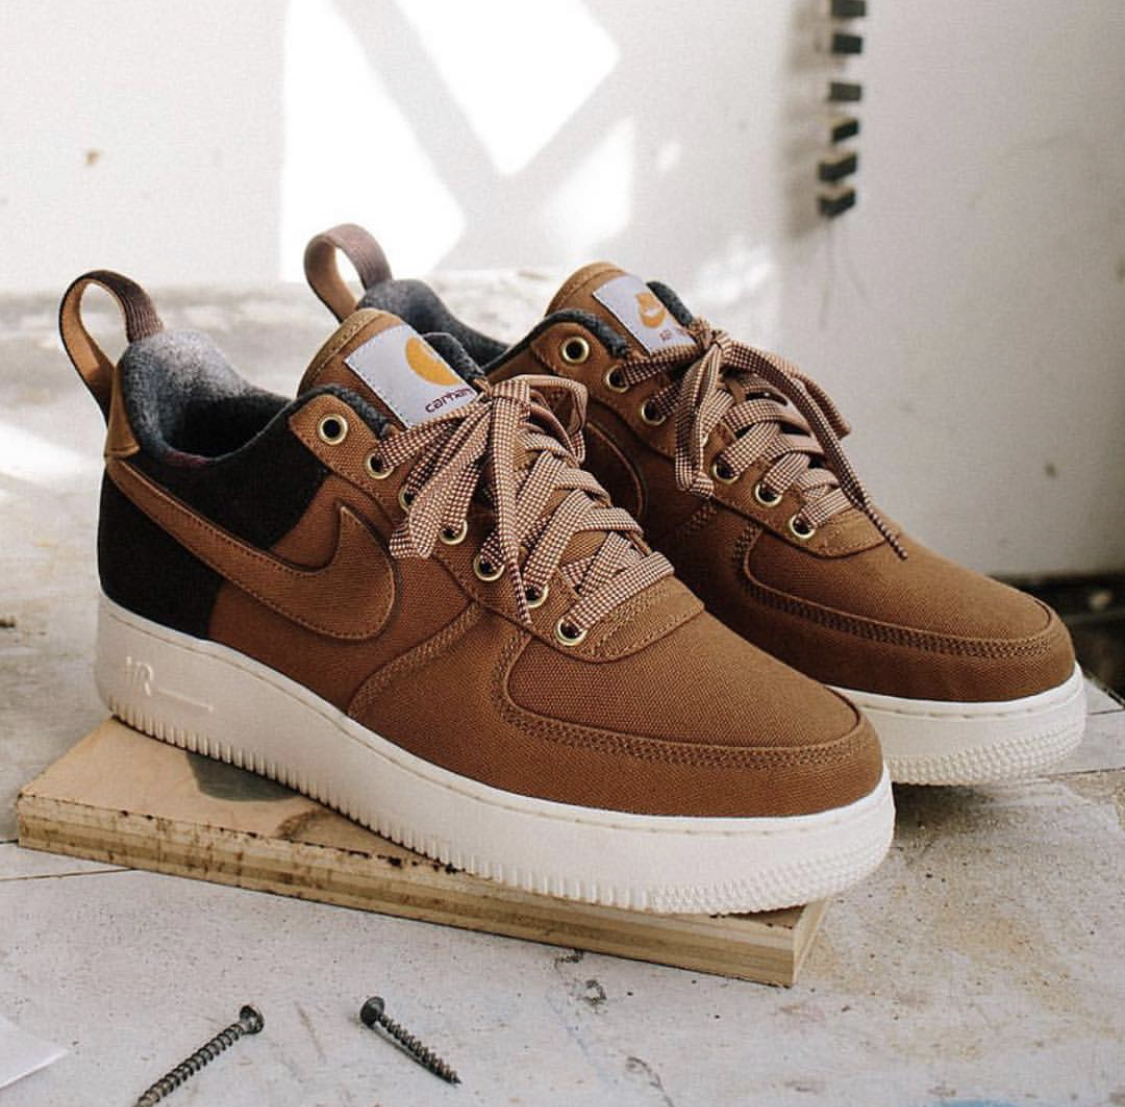 big sale new arrive look good shoes sale Now Available: Carhartt WIP x Nike Air Force 1 Low